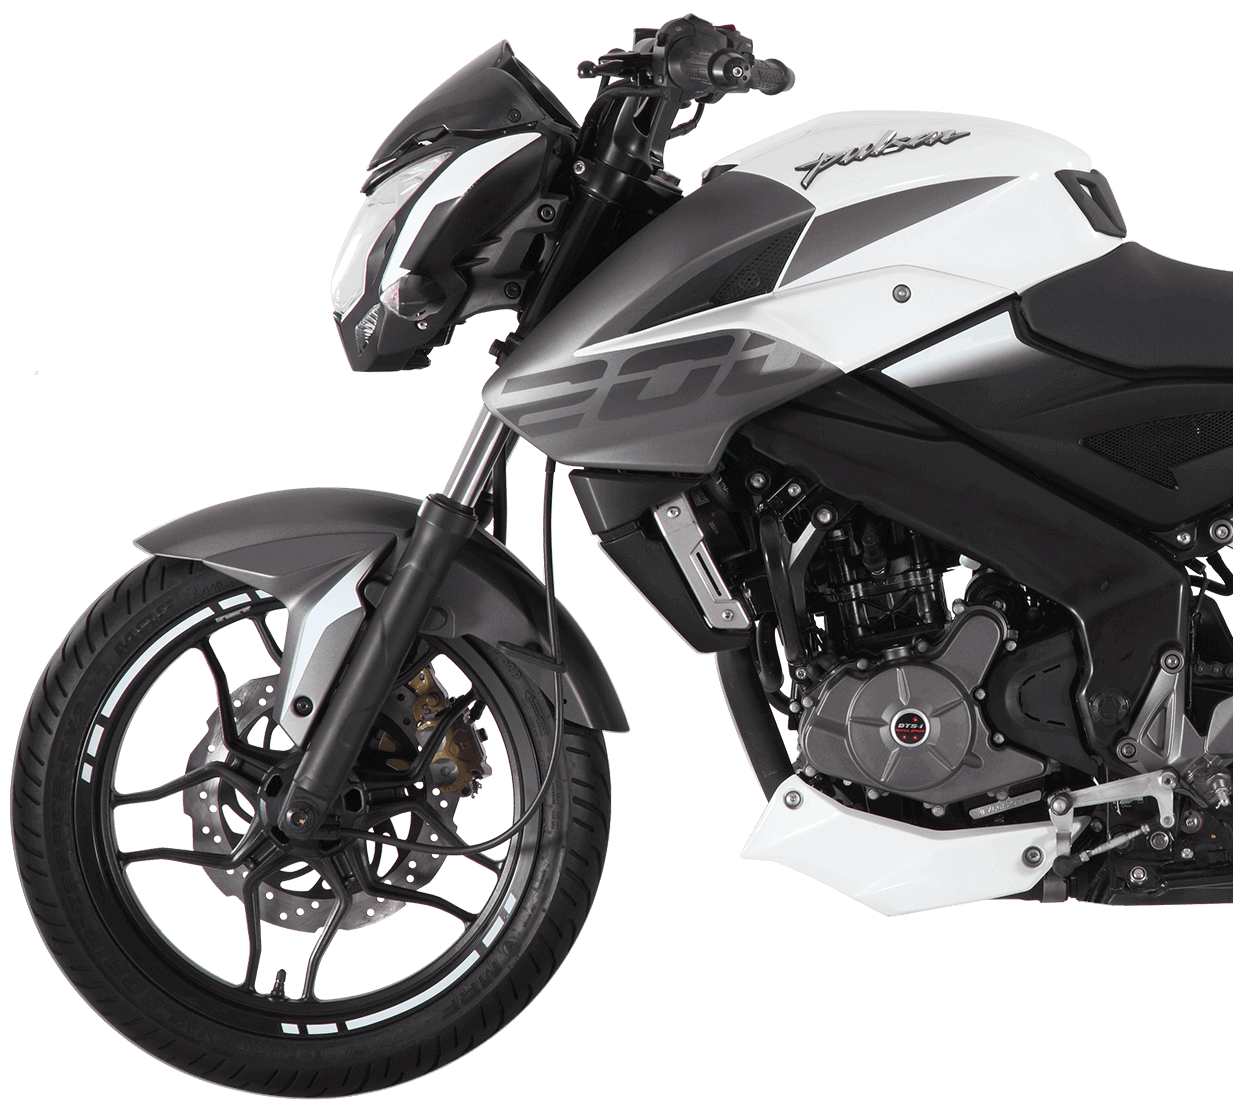 Yamaha r15 reviews price specifications mileage autos post for Yamaha ns sw40 price